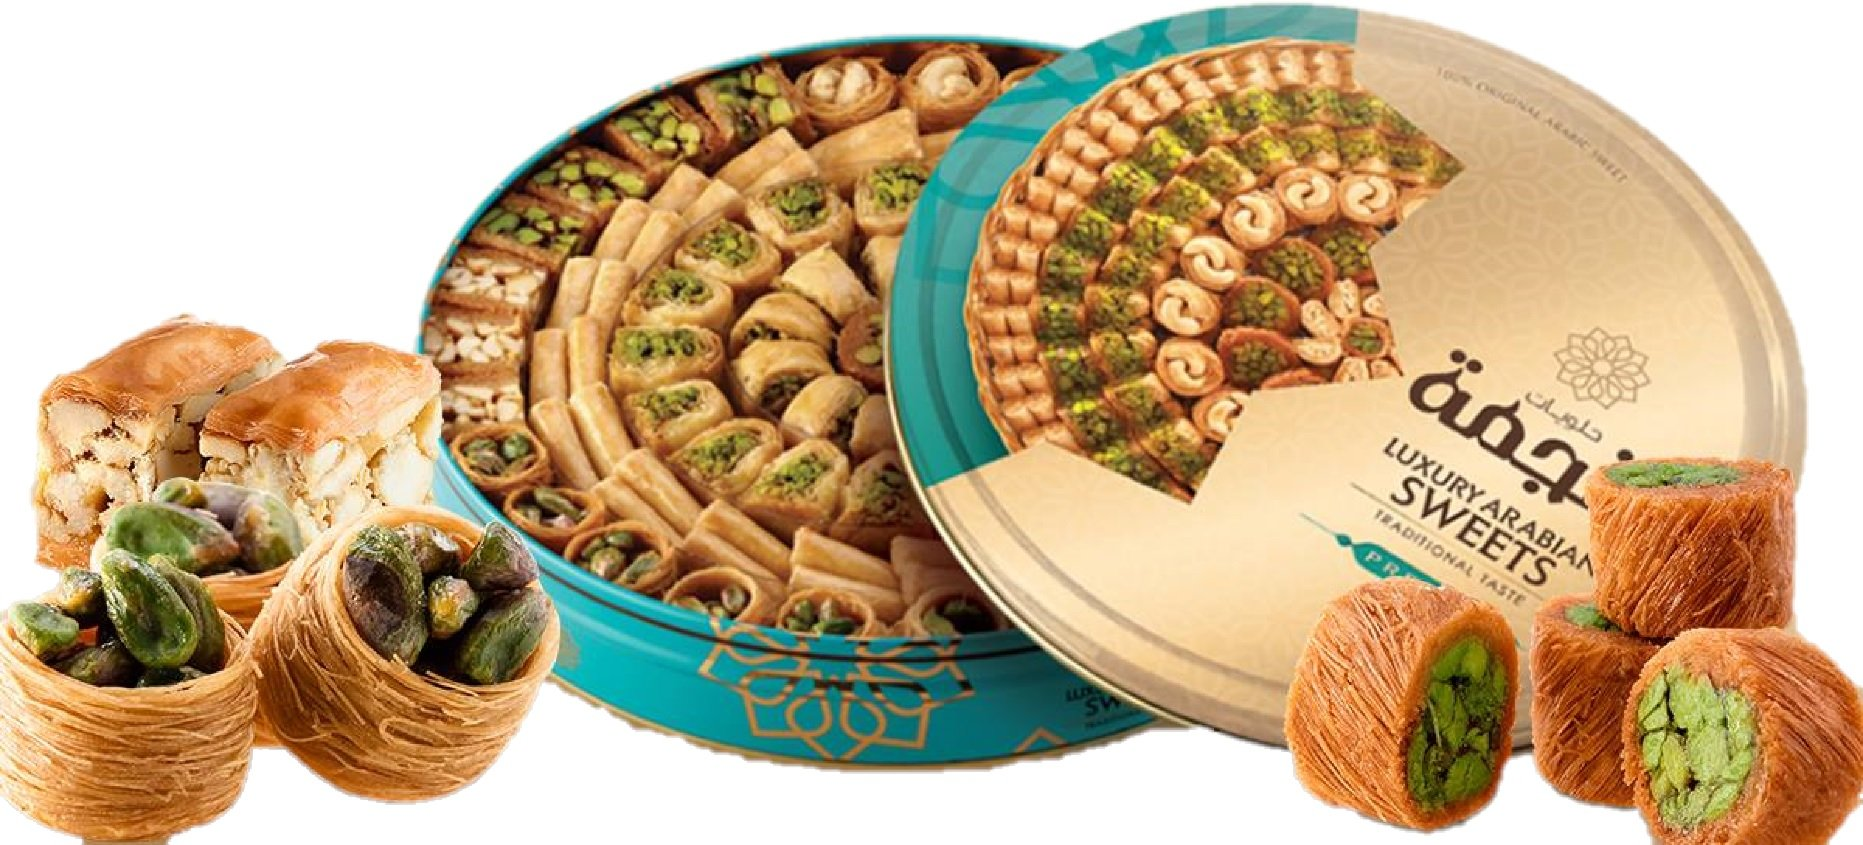 P110 - Baklava Sweets Assorted (105-110 Pcs, 10 Varieties) (36 Oz Net, 3 lbs Gross) (Oglu) - Cookies Pastry Assortment in Very Classy Gift Box (Baklava Mix Box, P110) by Turkish Delight (Image #2)